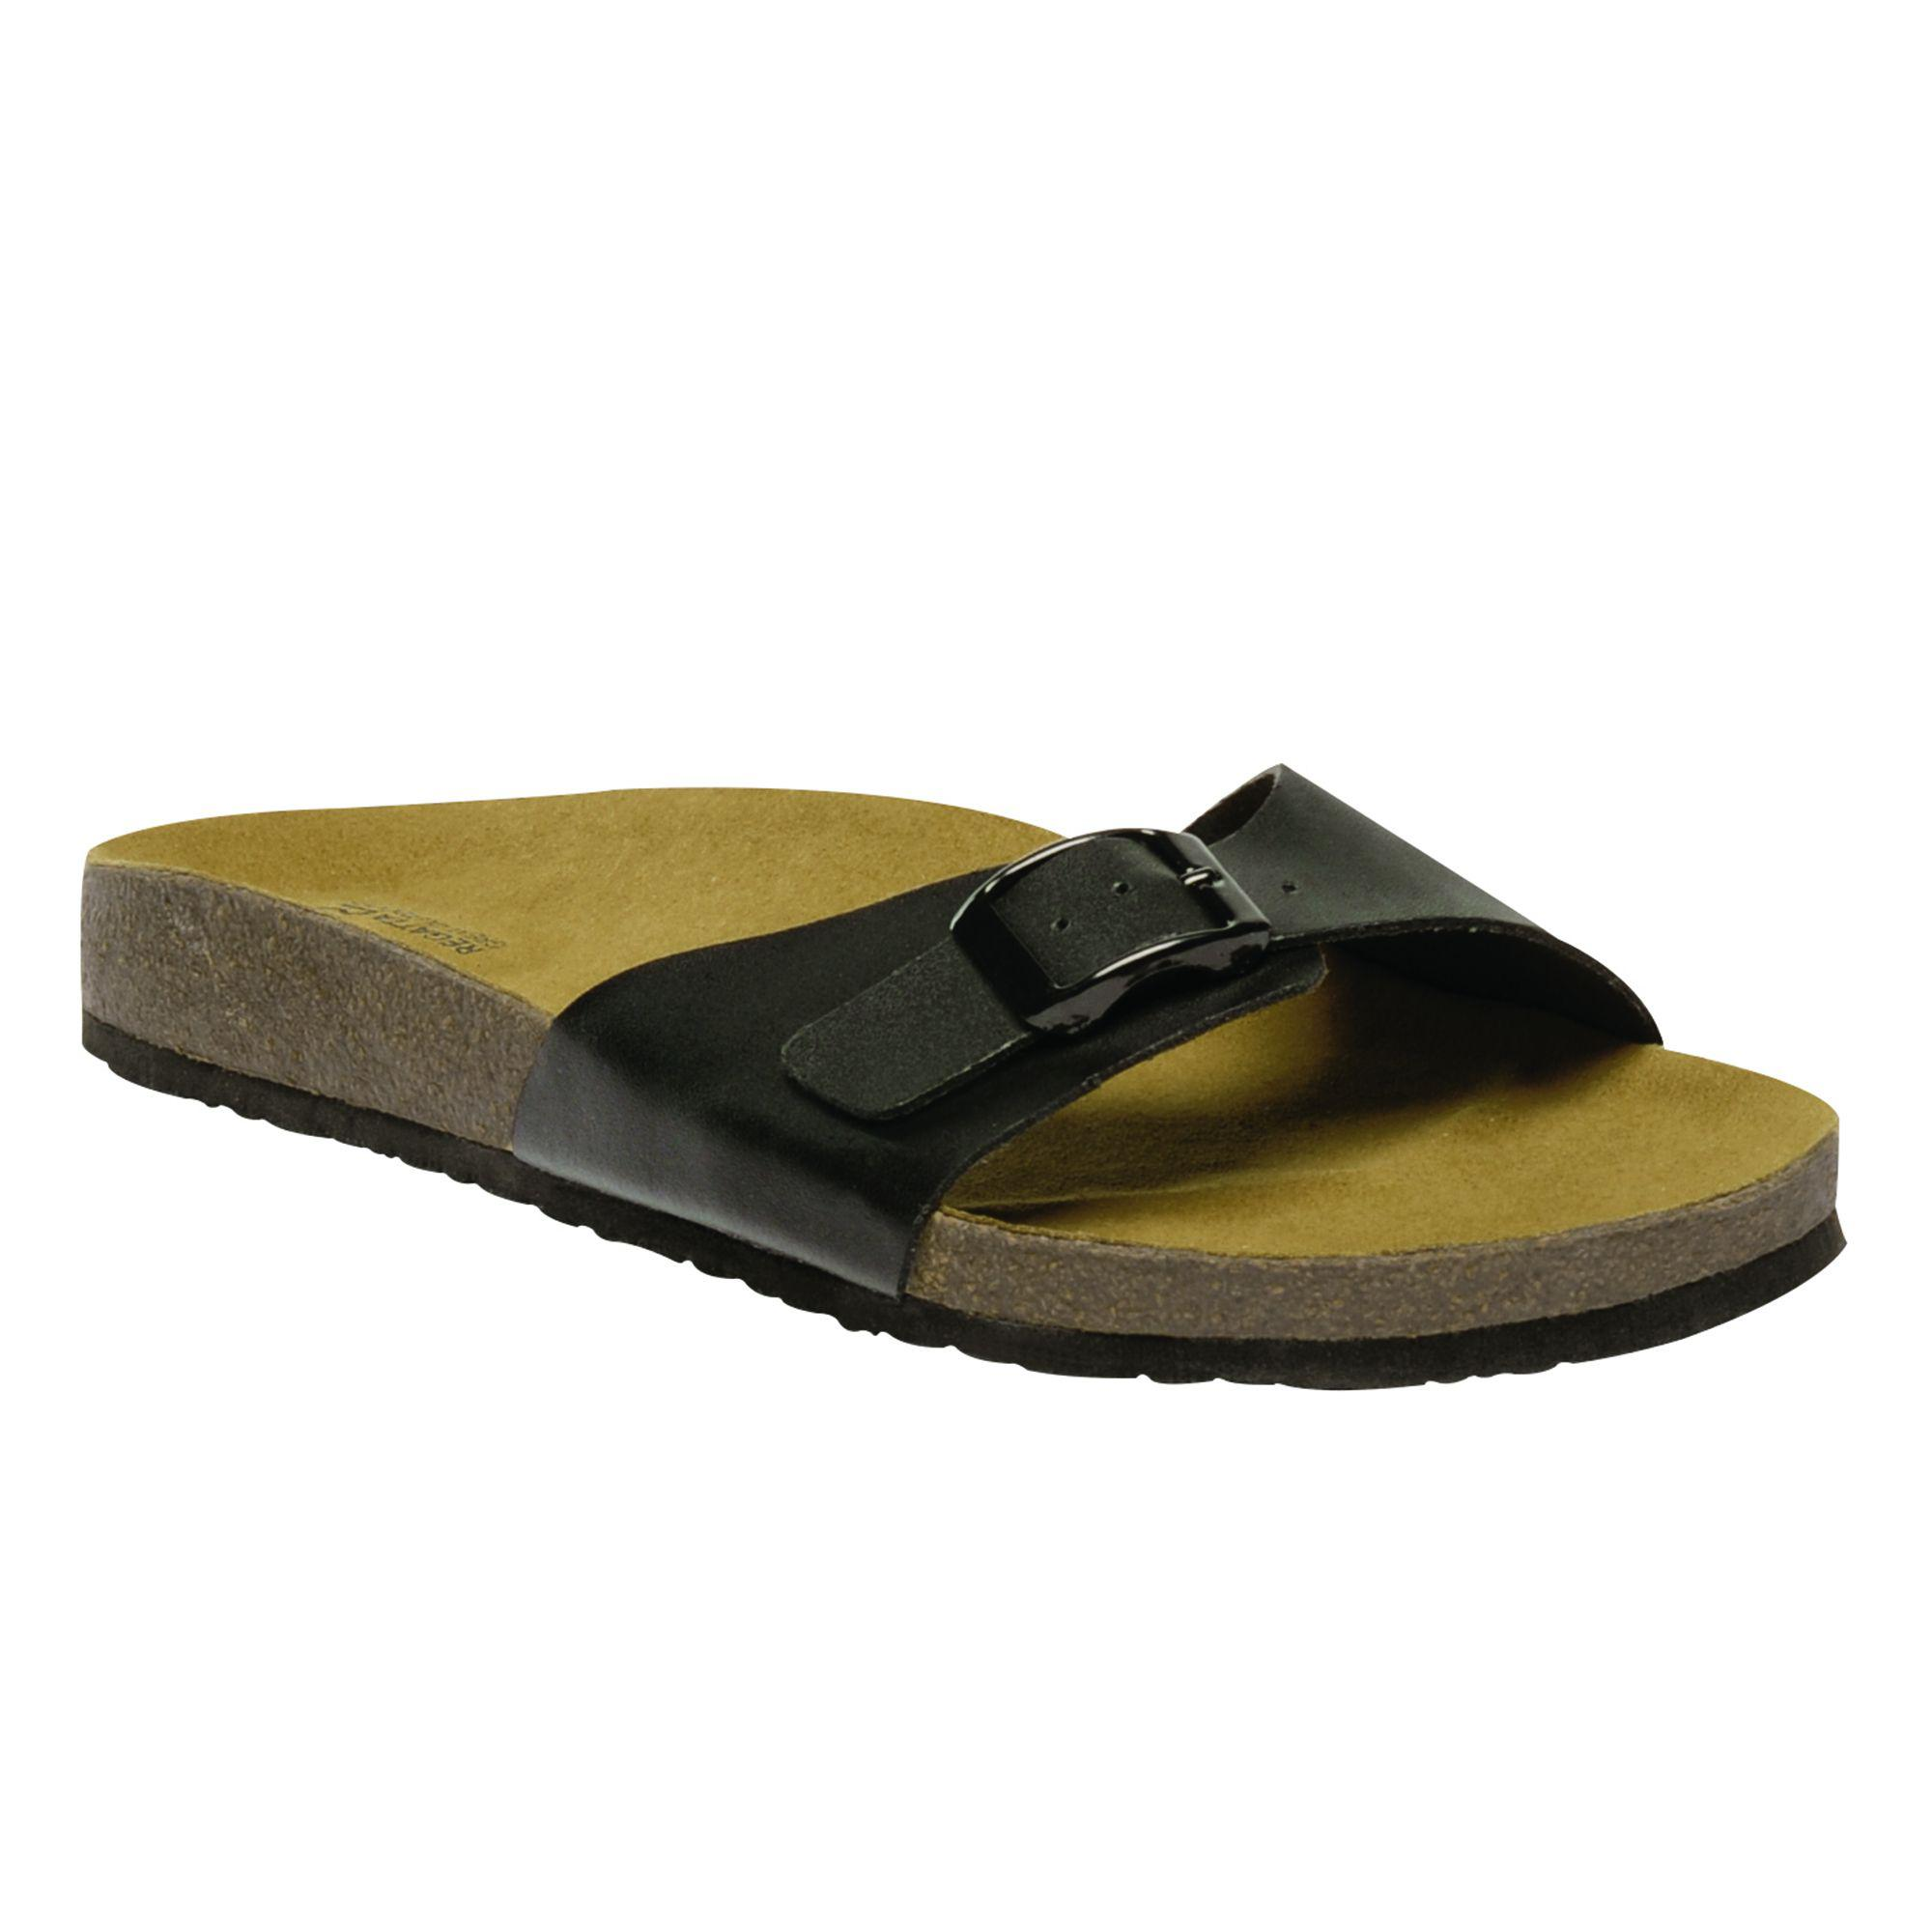 Black 'lady Margate' sandals great deals outlet cheap authentic clearance popular clearance sast G5wpo4